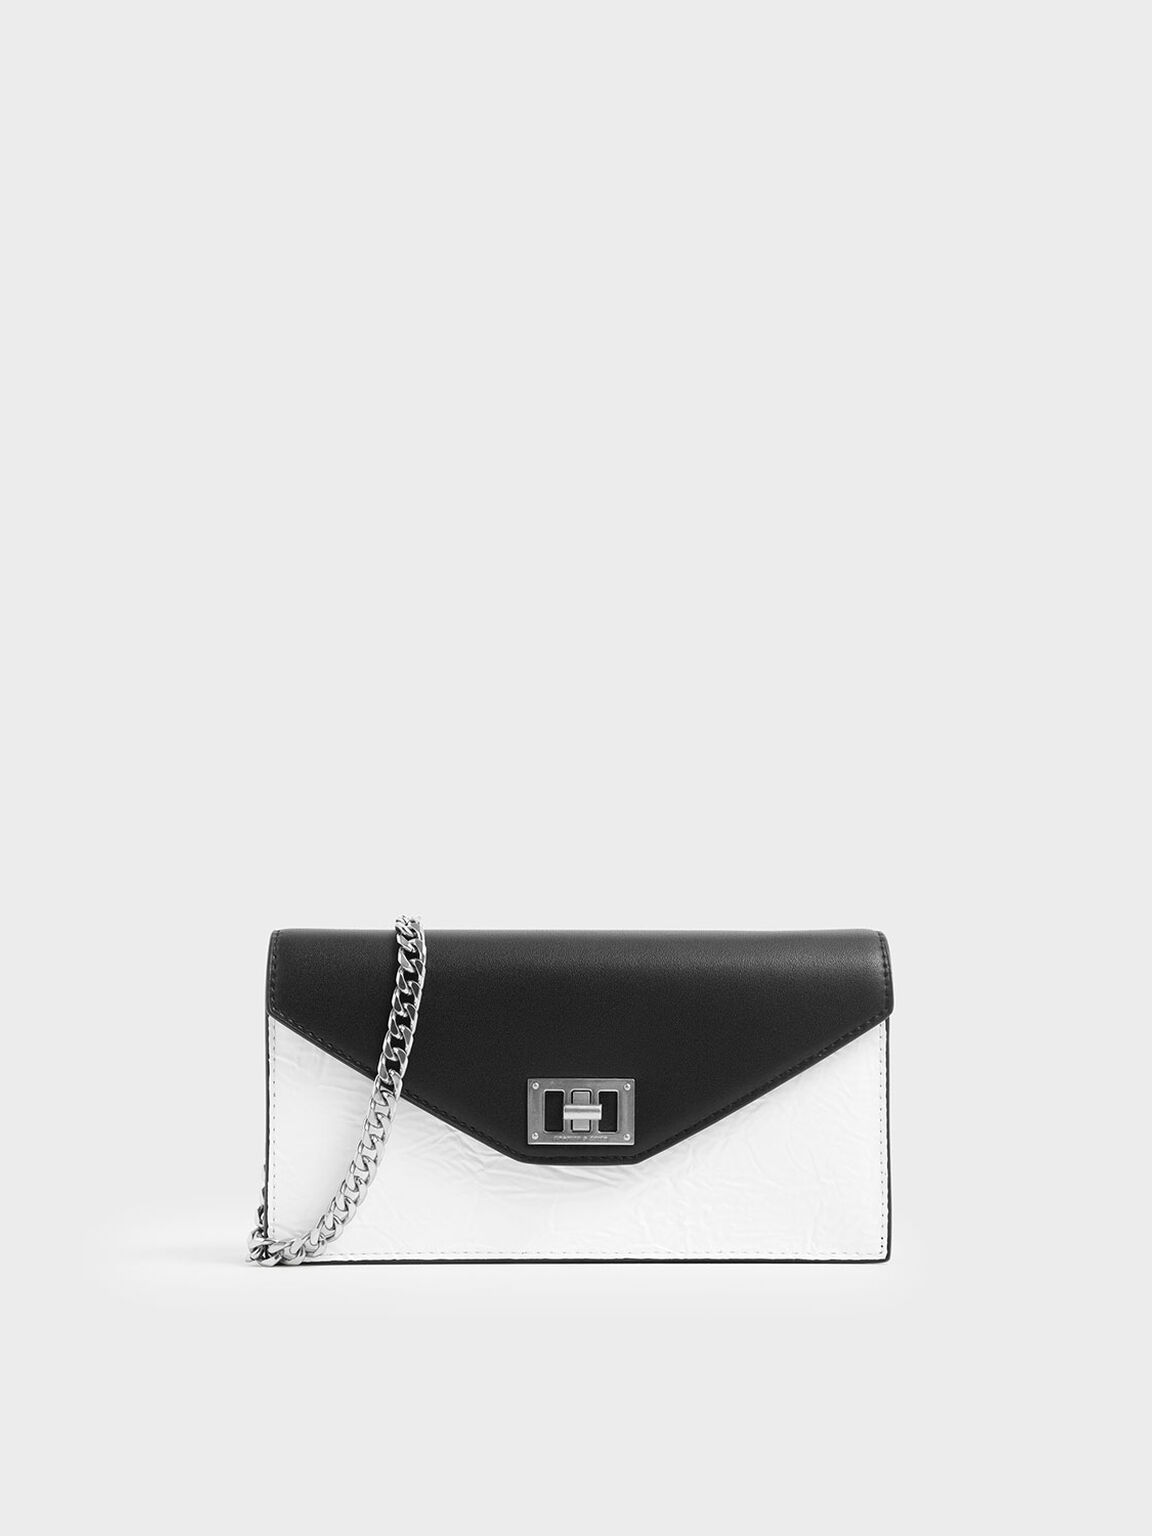 Two-Tone Wrinkled Effect Long Envelope Wallet, White, hi-res